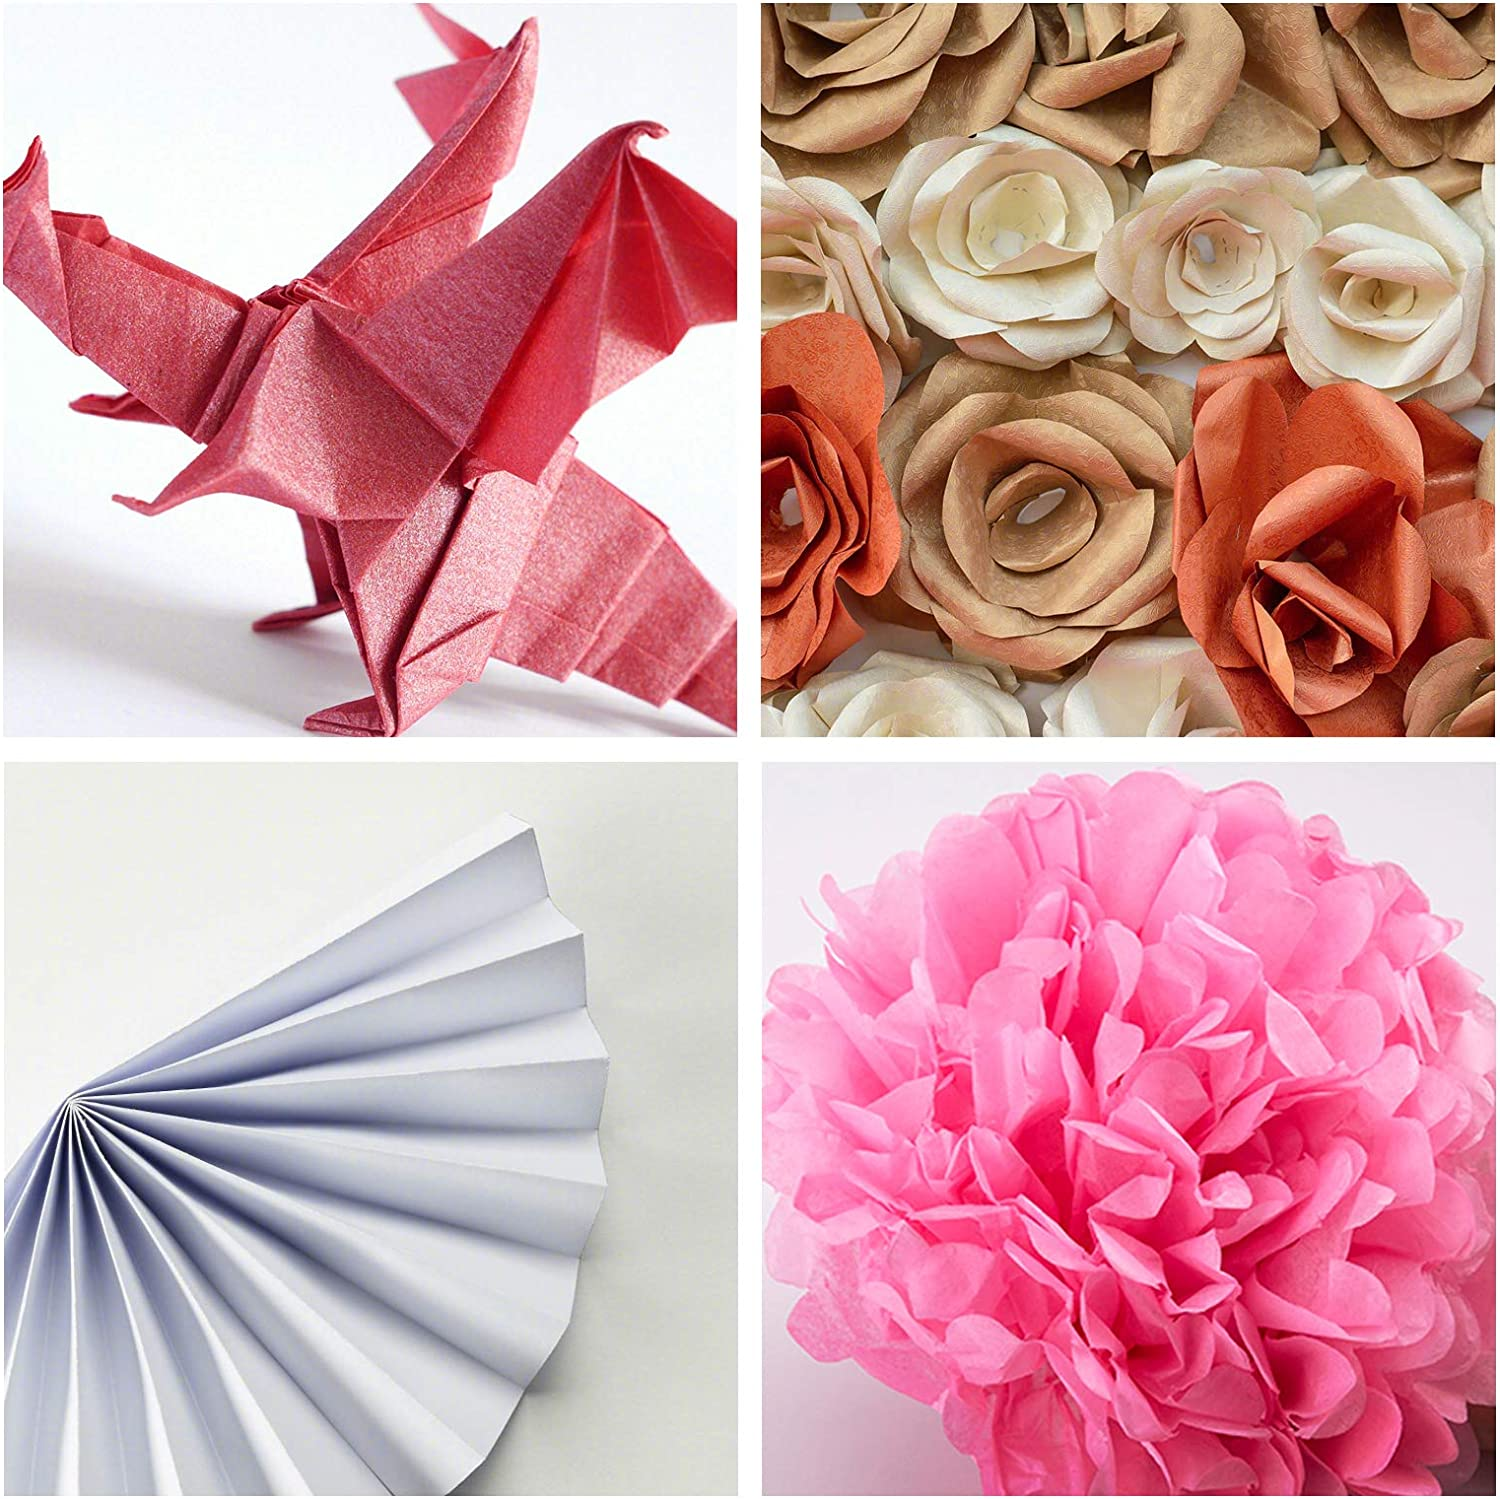 AIEX 50 Sheets Tissue Paper Mixed Colors Wrapping Paper Sheets for ...